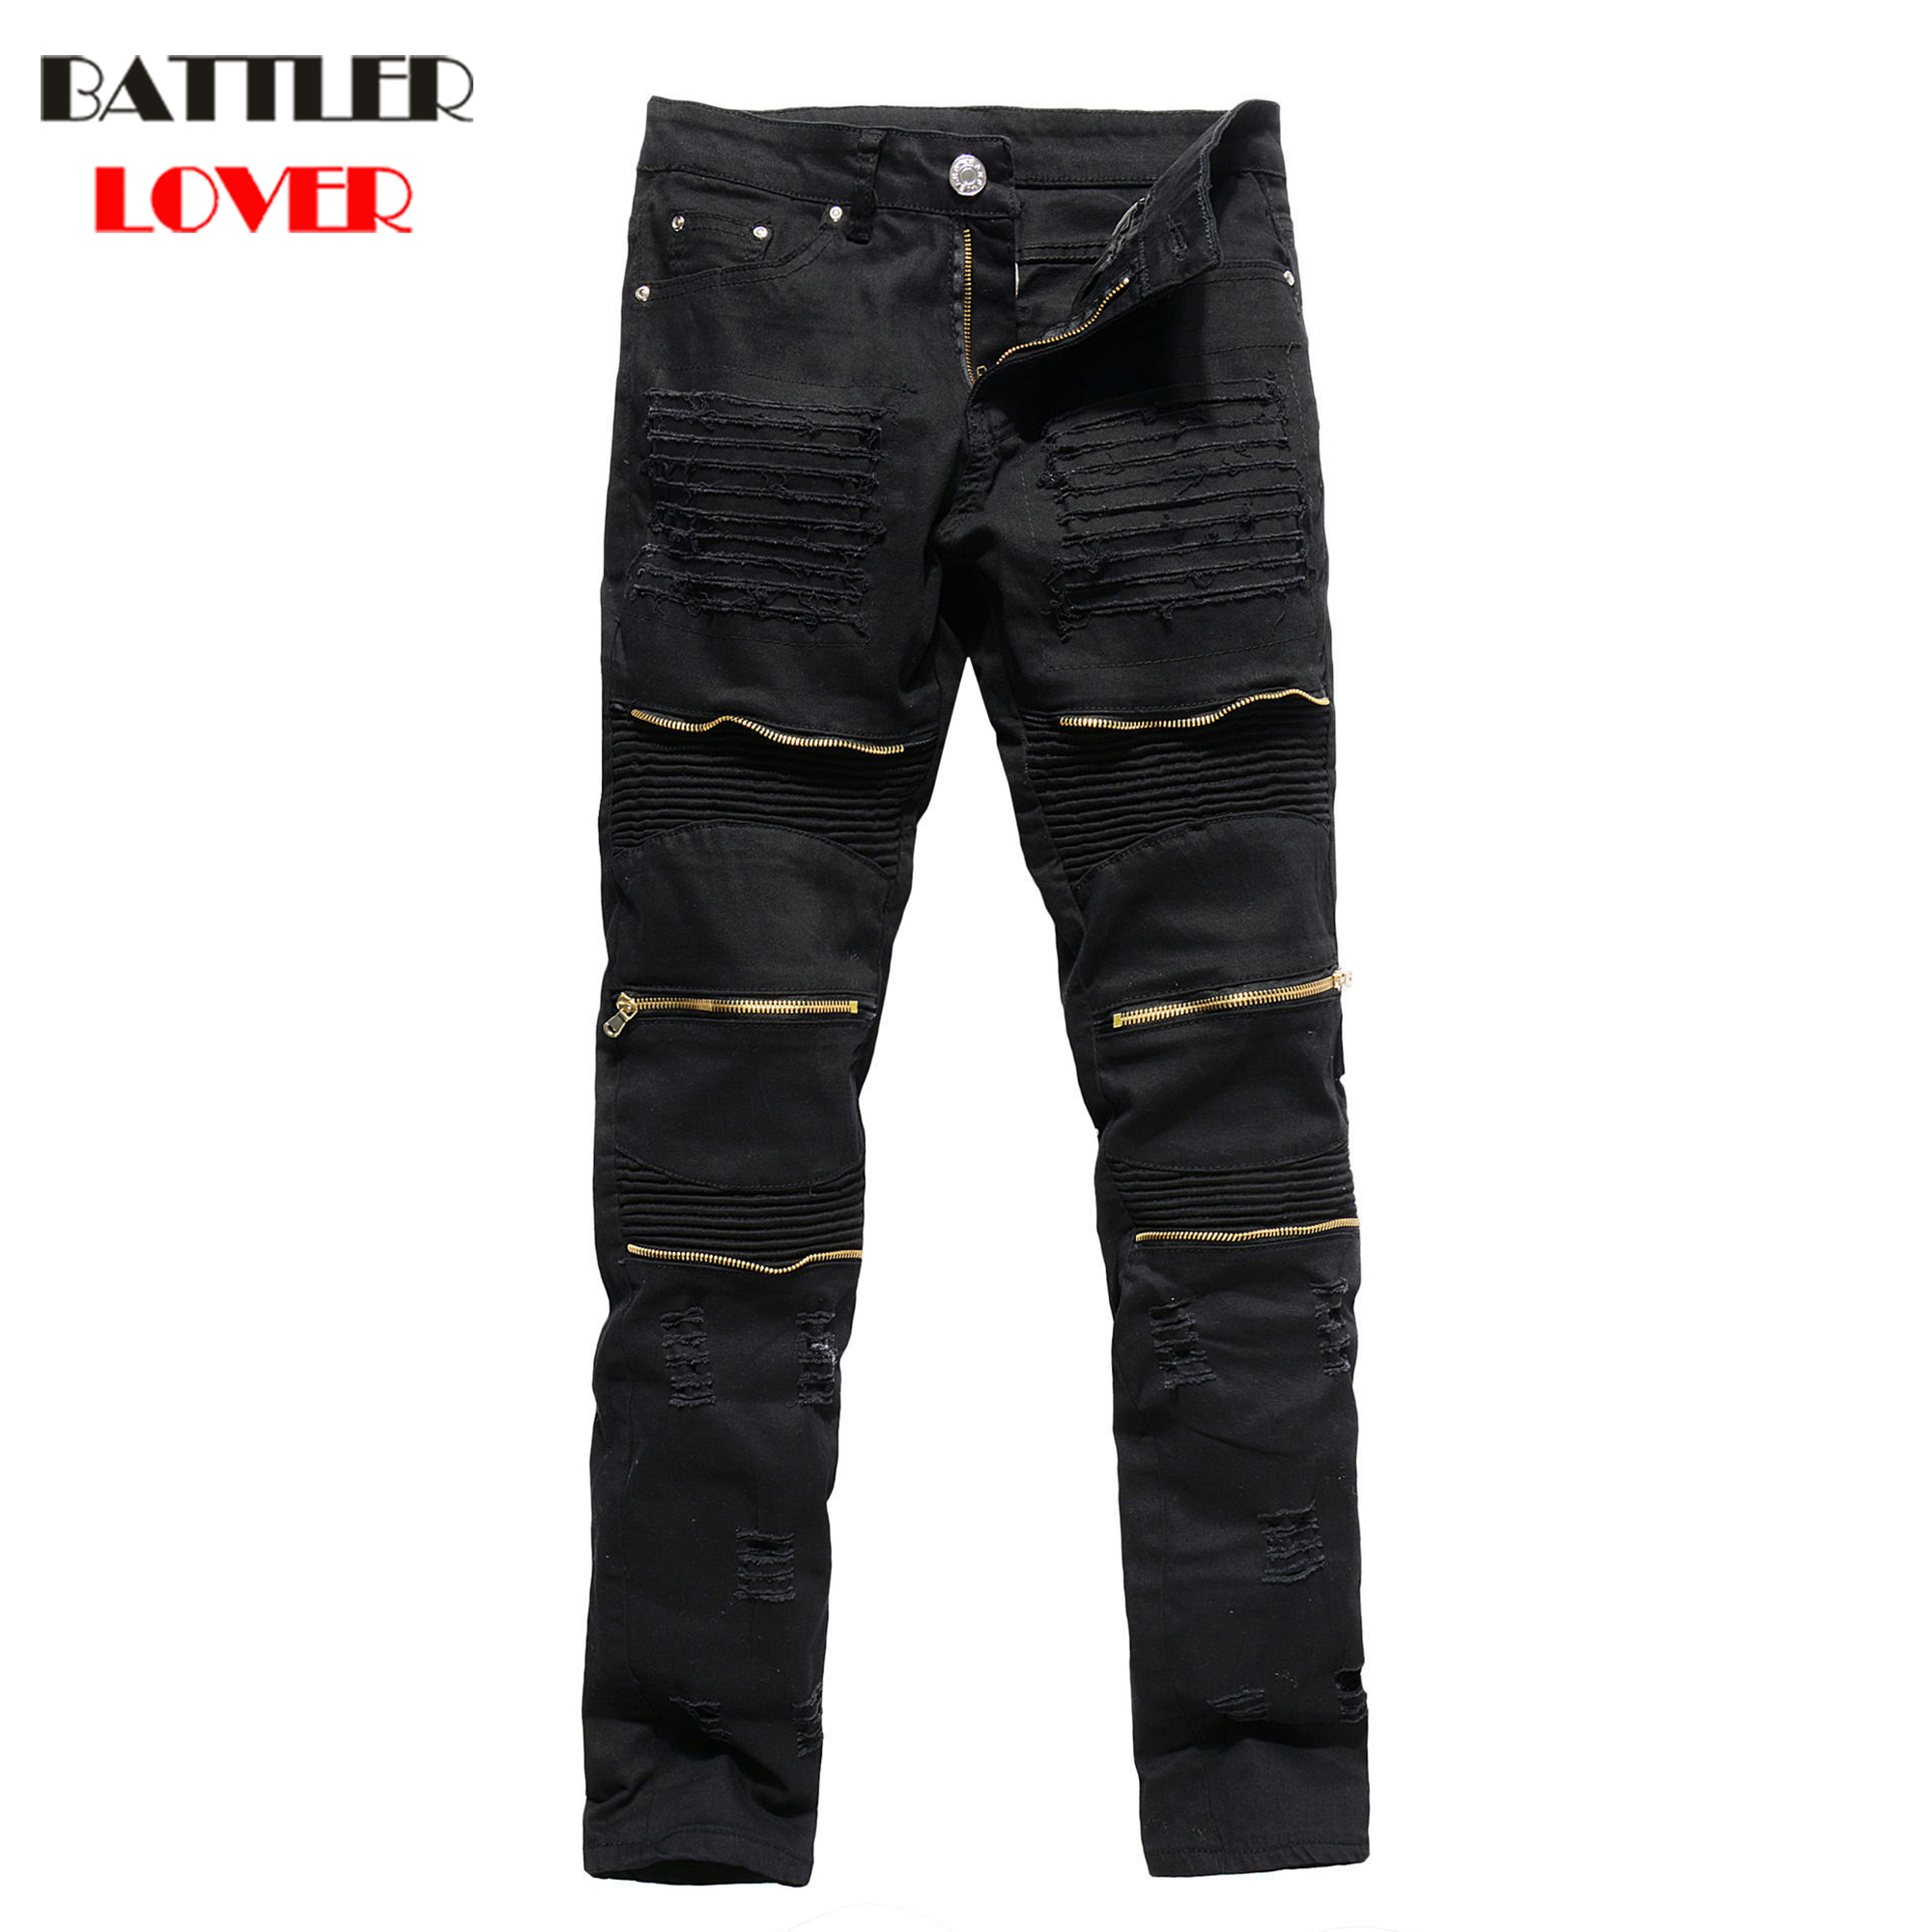 2017 Jeans Men Fear of God Biker Jeans Denim Trousers Mens Hip Hop Game of Thrones Jeans Pant Casual Luxury Brand Slim Fit Pants dsel designer men jeans slim fit straight denim thin stretch mens skinny biker jeans casual pants hip hop denim trousers